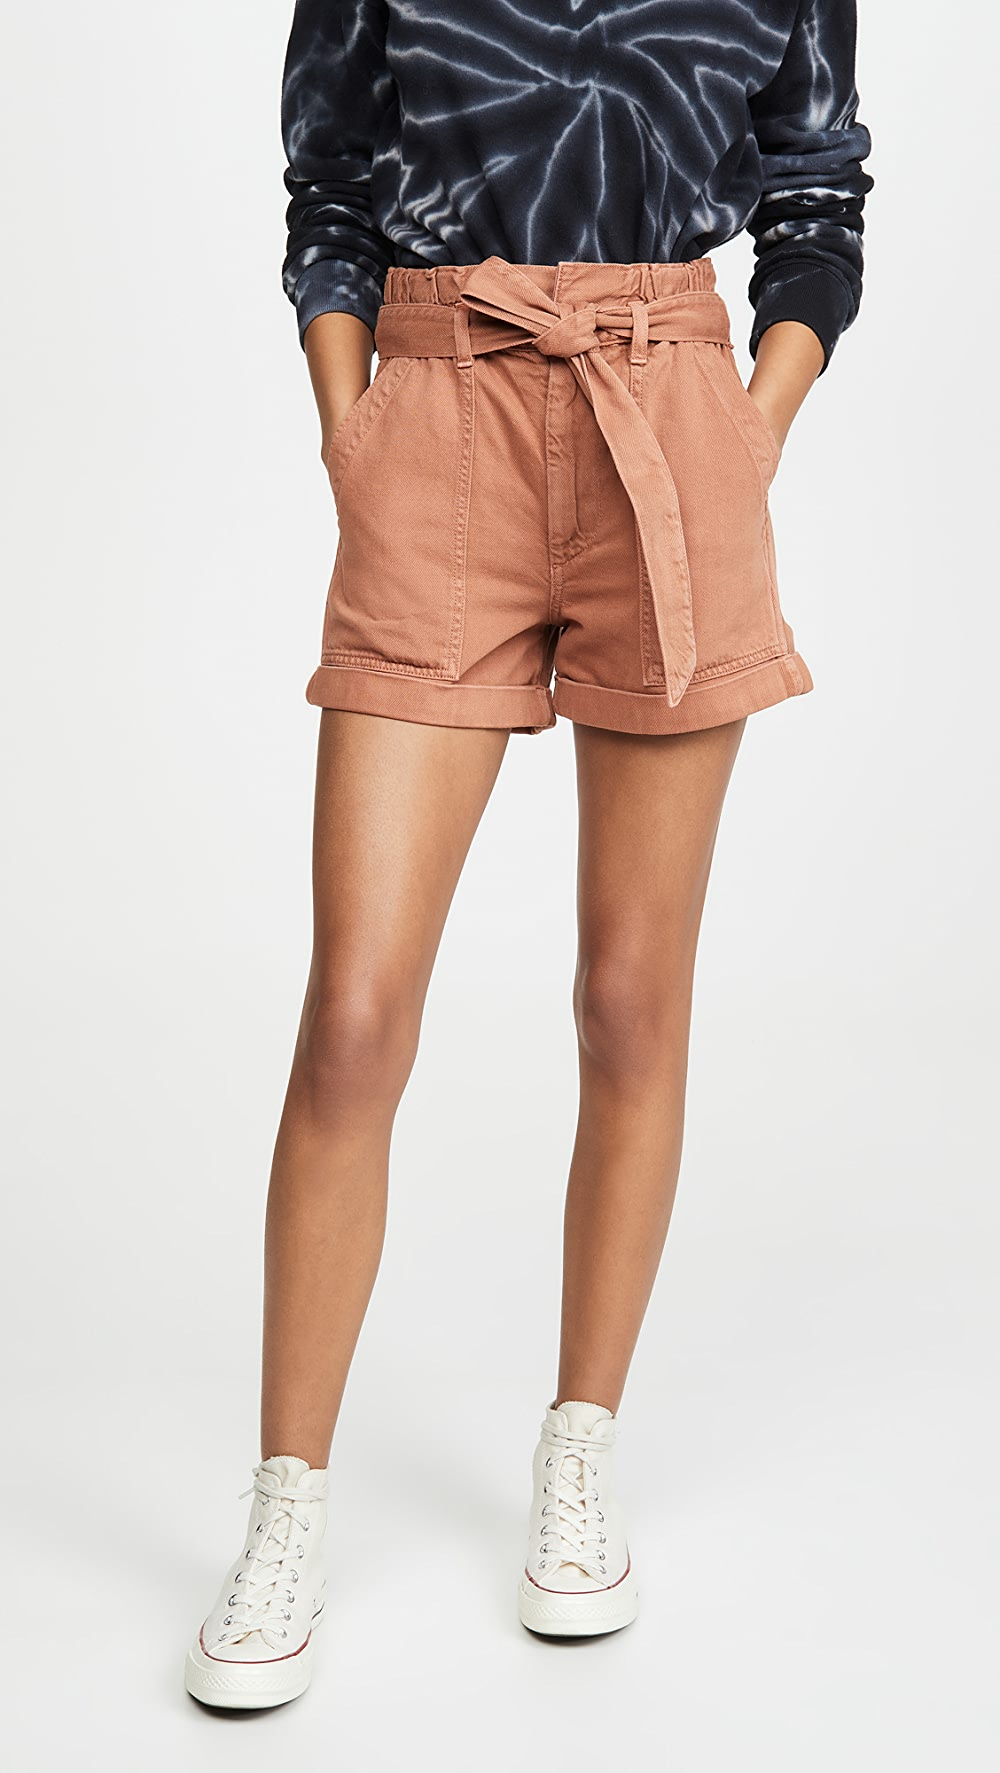 Bright Amo - Paperbag Shorts Warm And Windproof